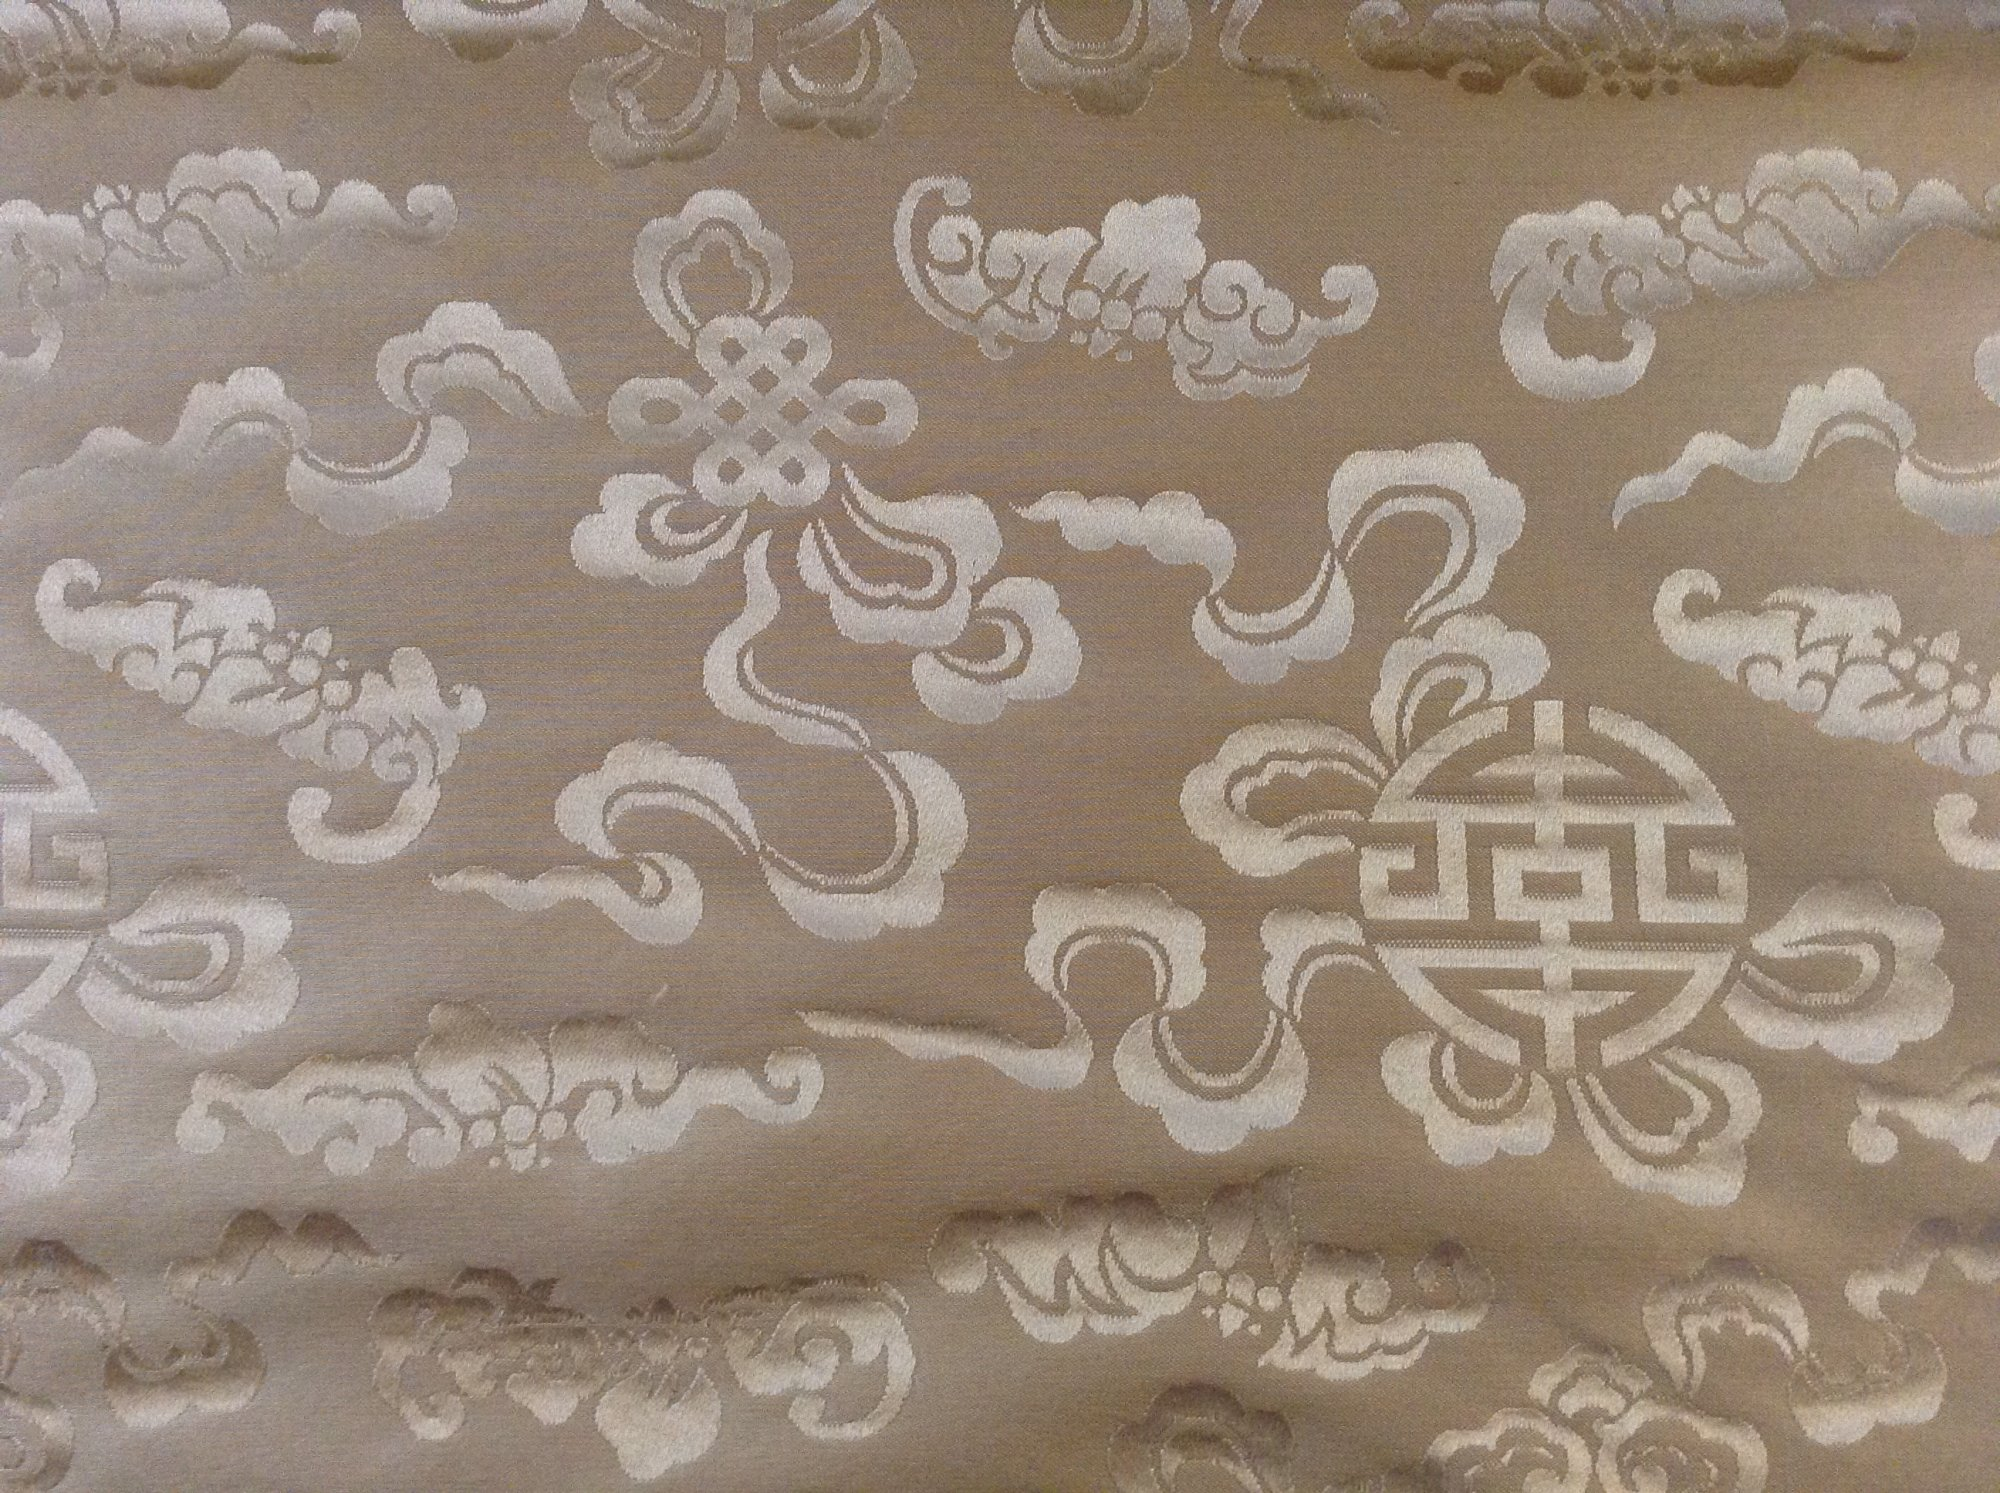 Brocade, silk satin, embroidered, gold on gold